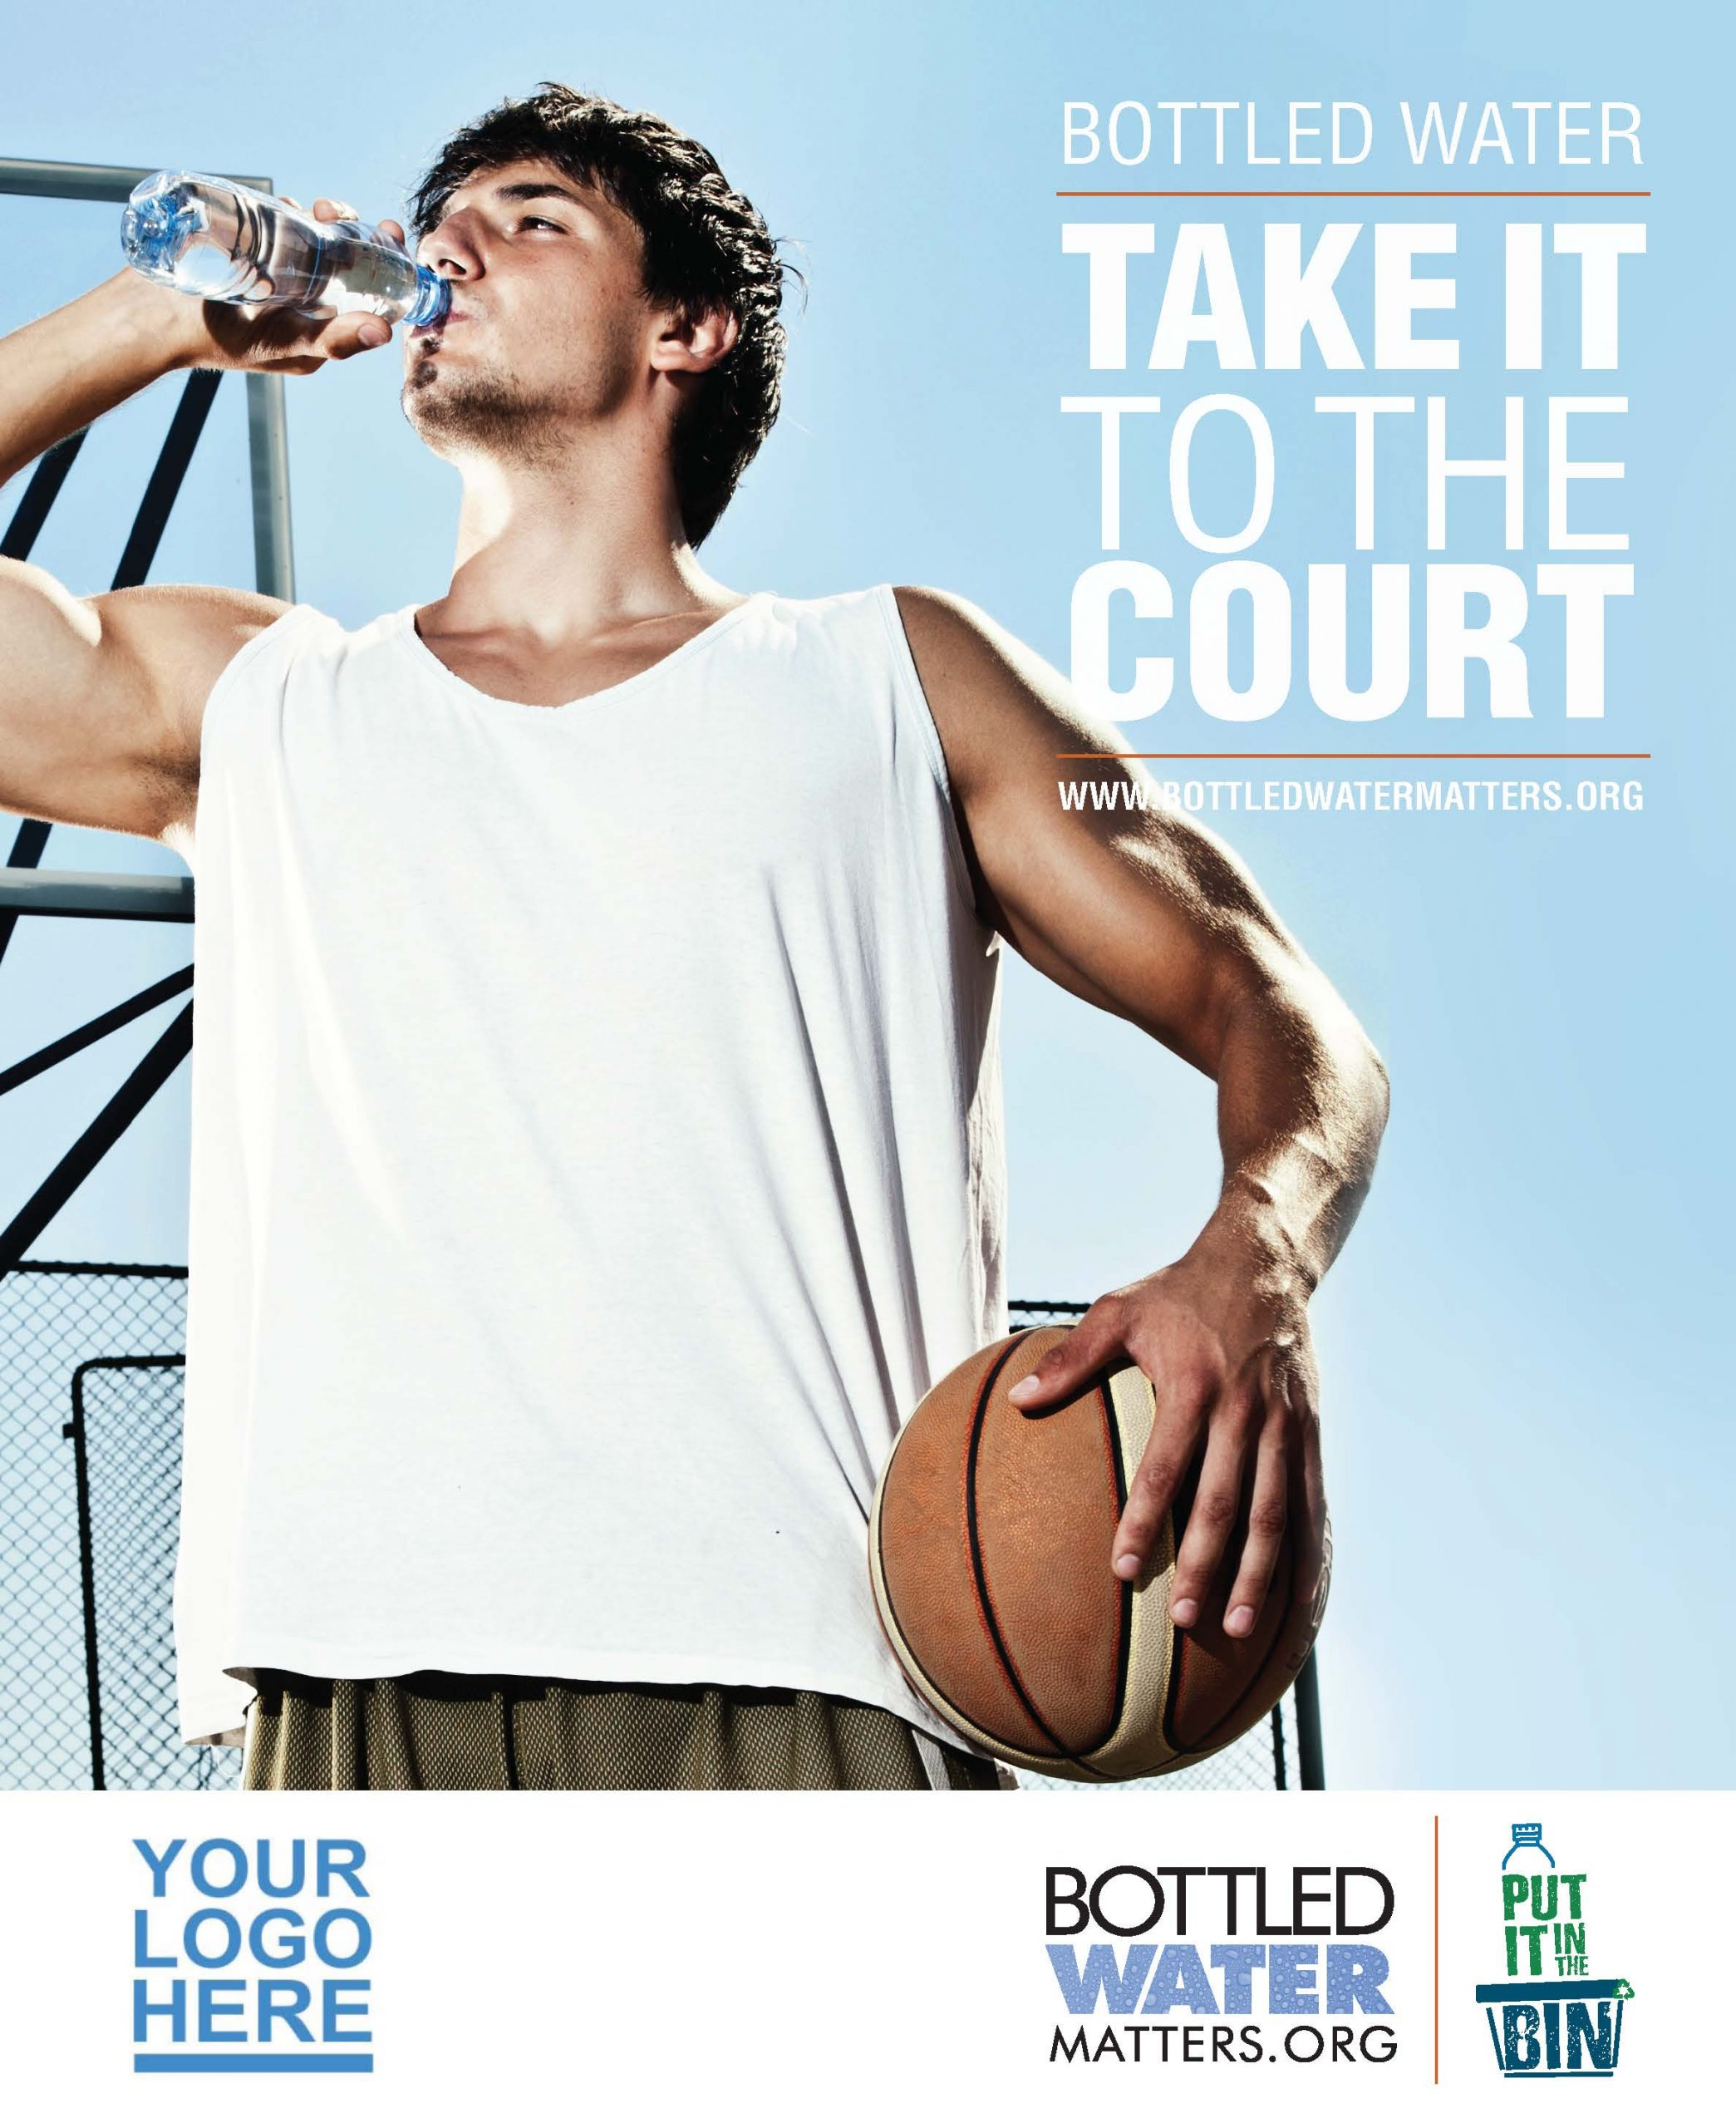 TakeItToTheCourt Member Scaled, Bottled Water | IBWA | Bottled Water